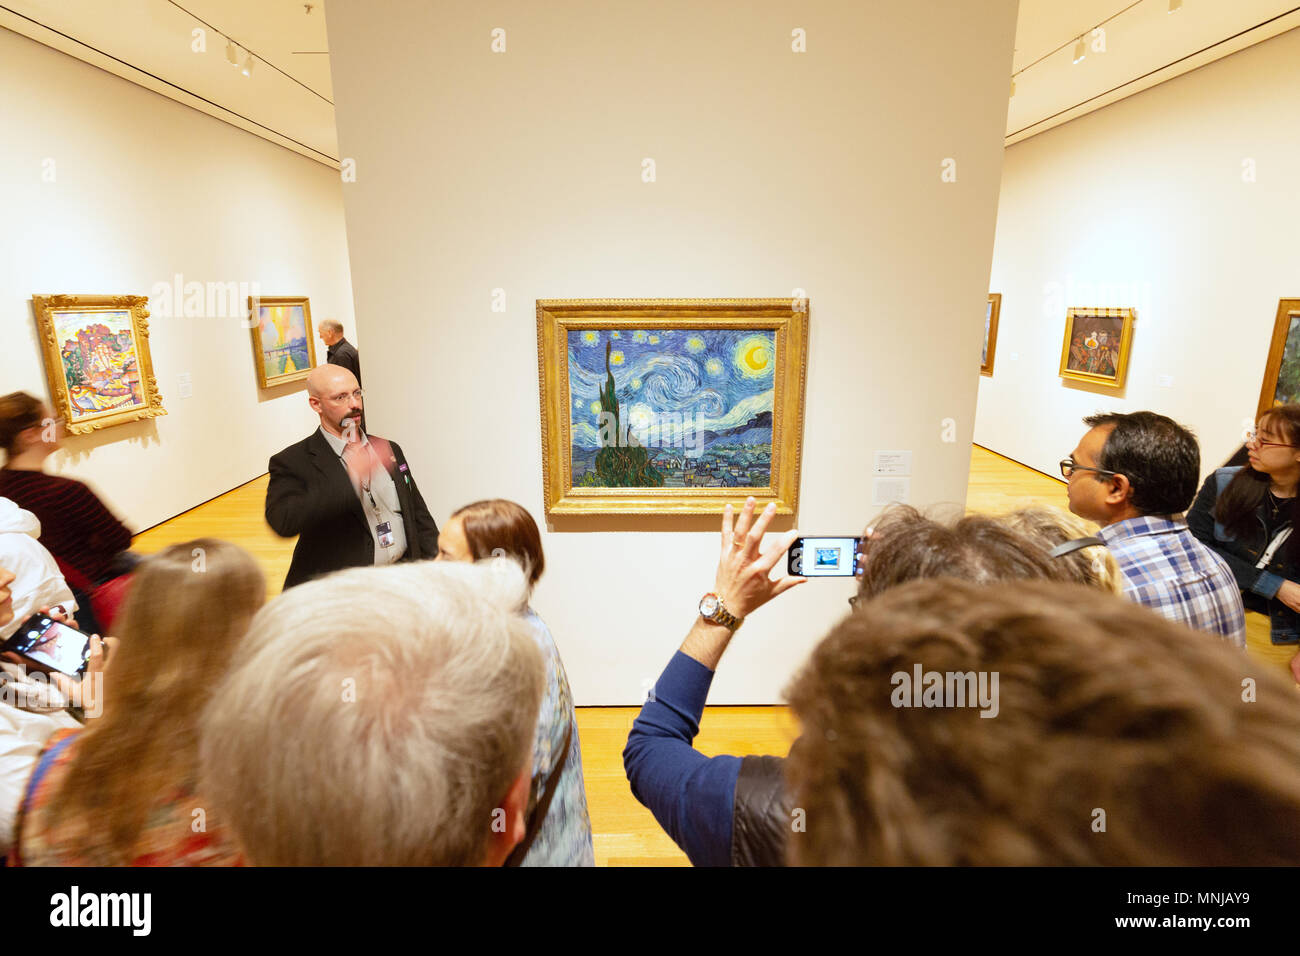 MoMA - Museum of Modern Art New York interior - people looking at ' The Starry Night ' oil painting by Vincent Van Gogh, MoMA, New York city USA - Stock Image